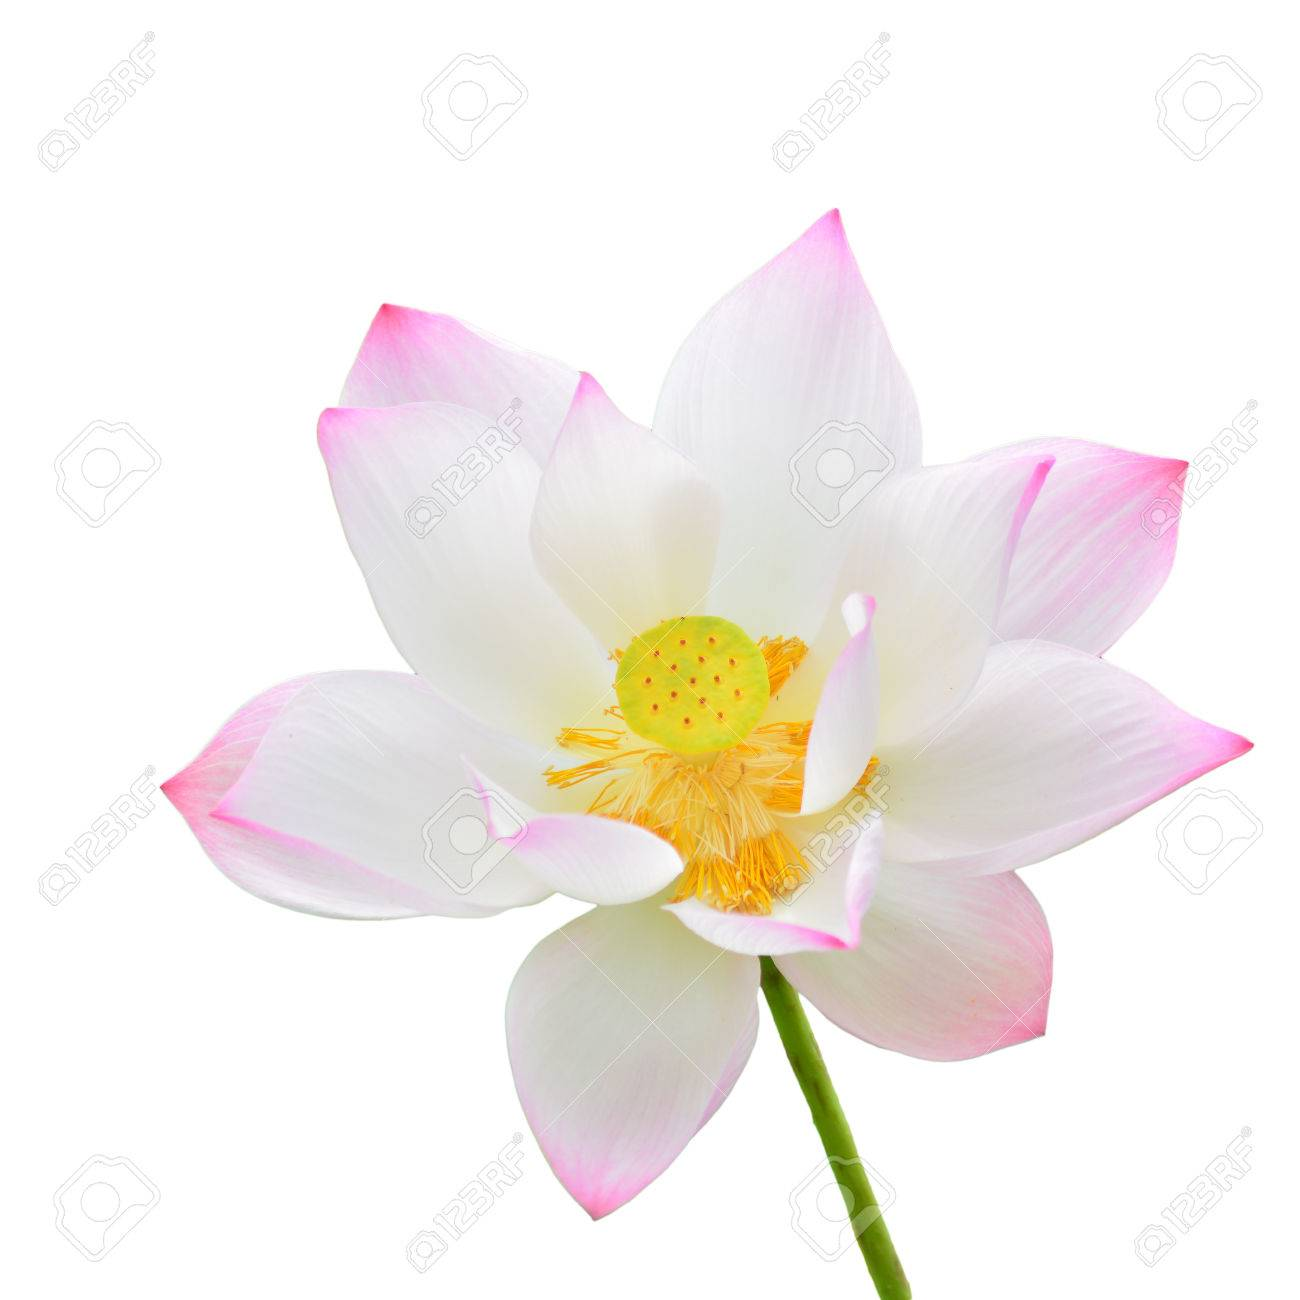 A Beautiful Pink Lotus Flower Isolate On White Background Stock